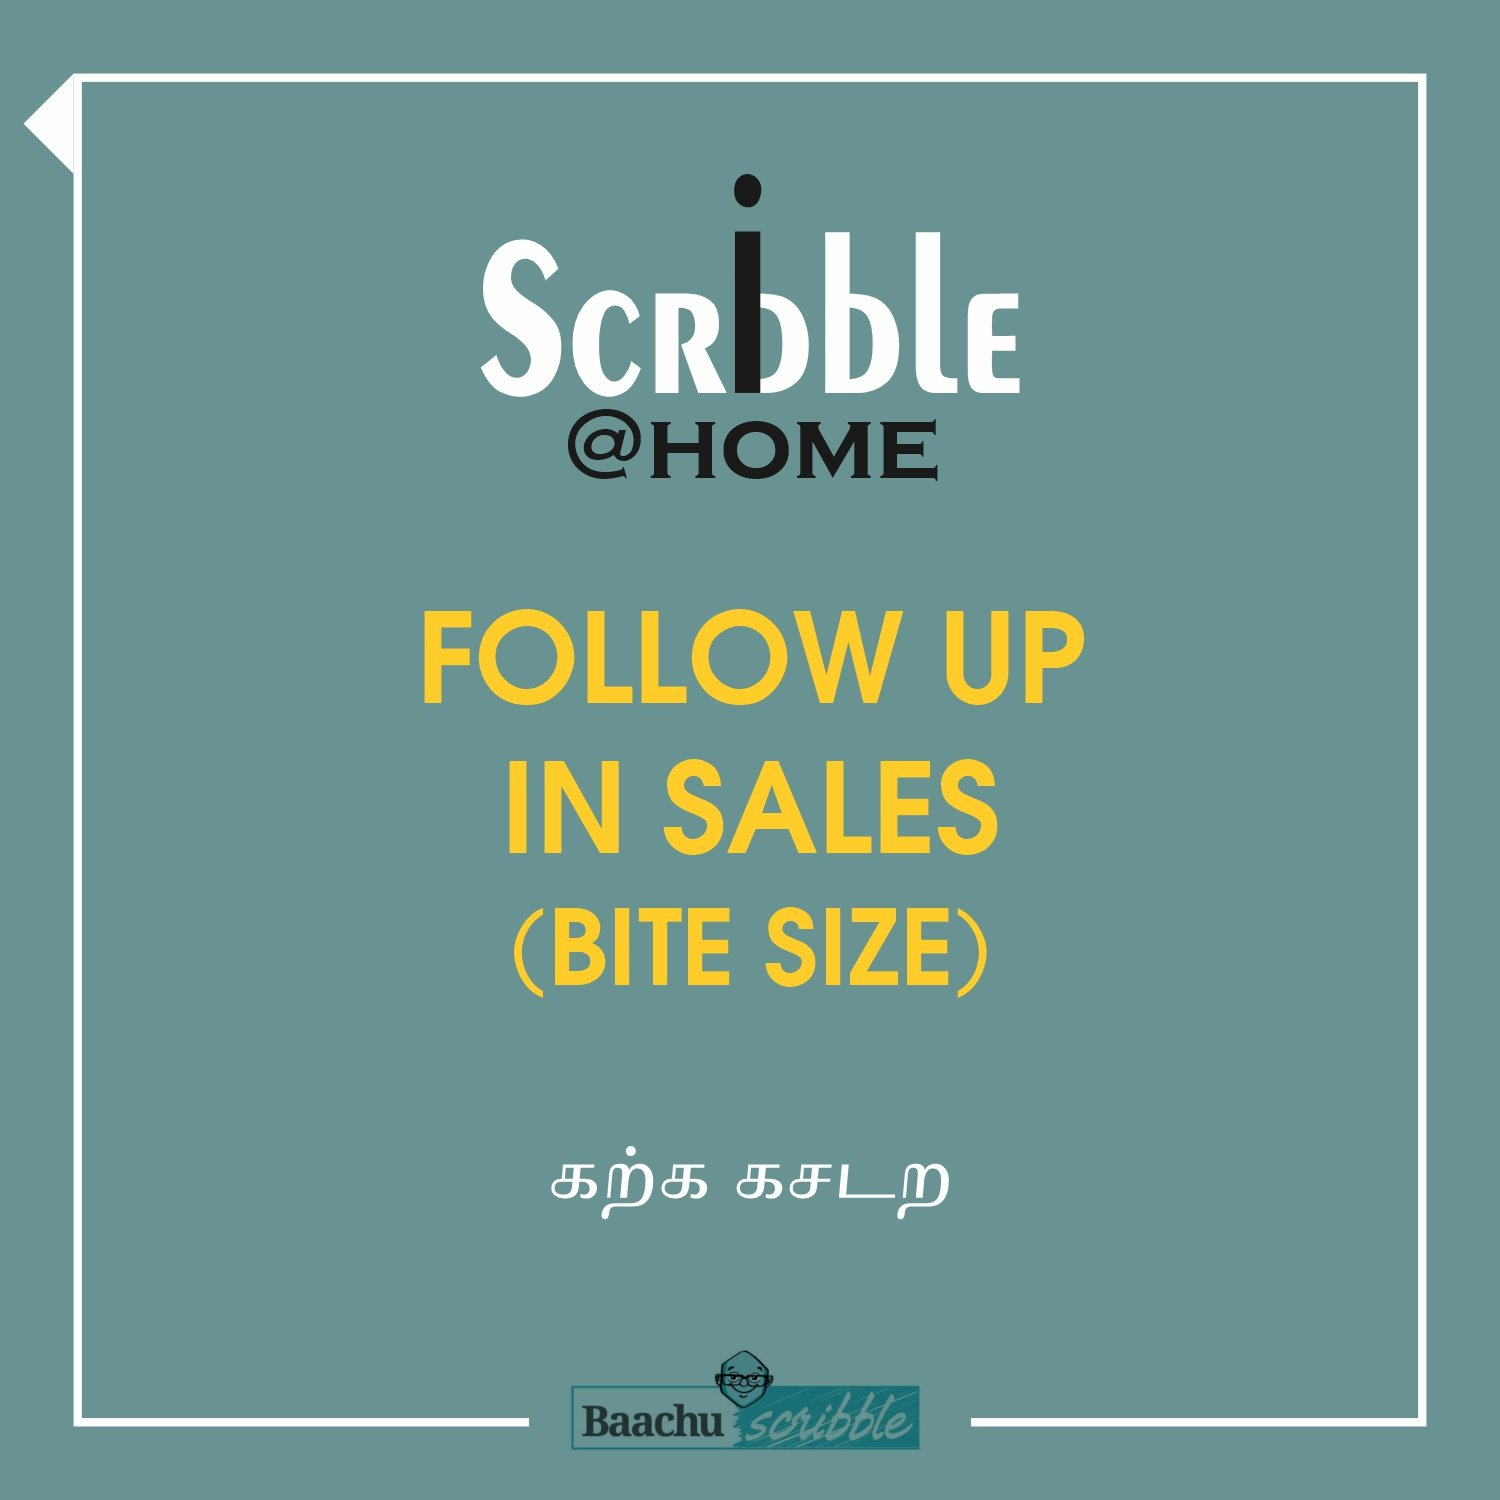 Follow Up in Sales (Bite Size)